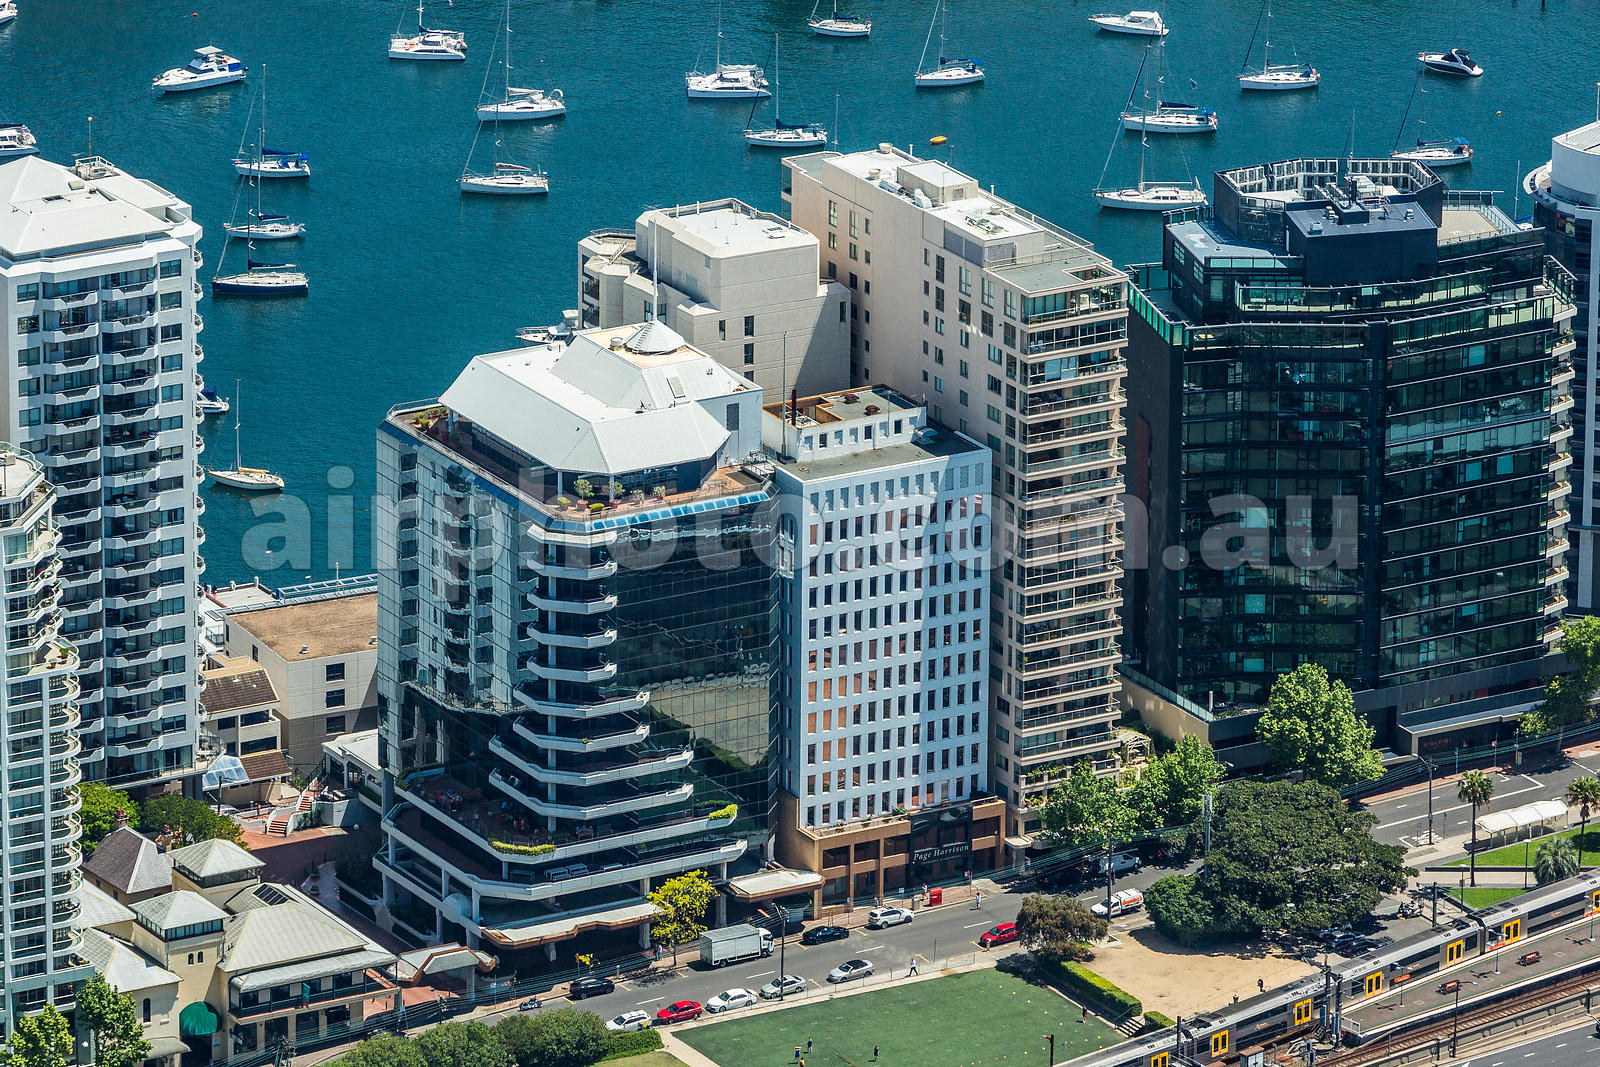 Milsons_Point_231018_15